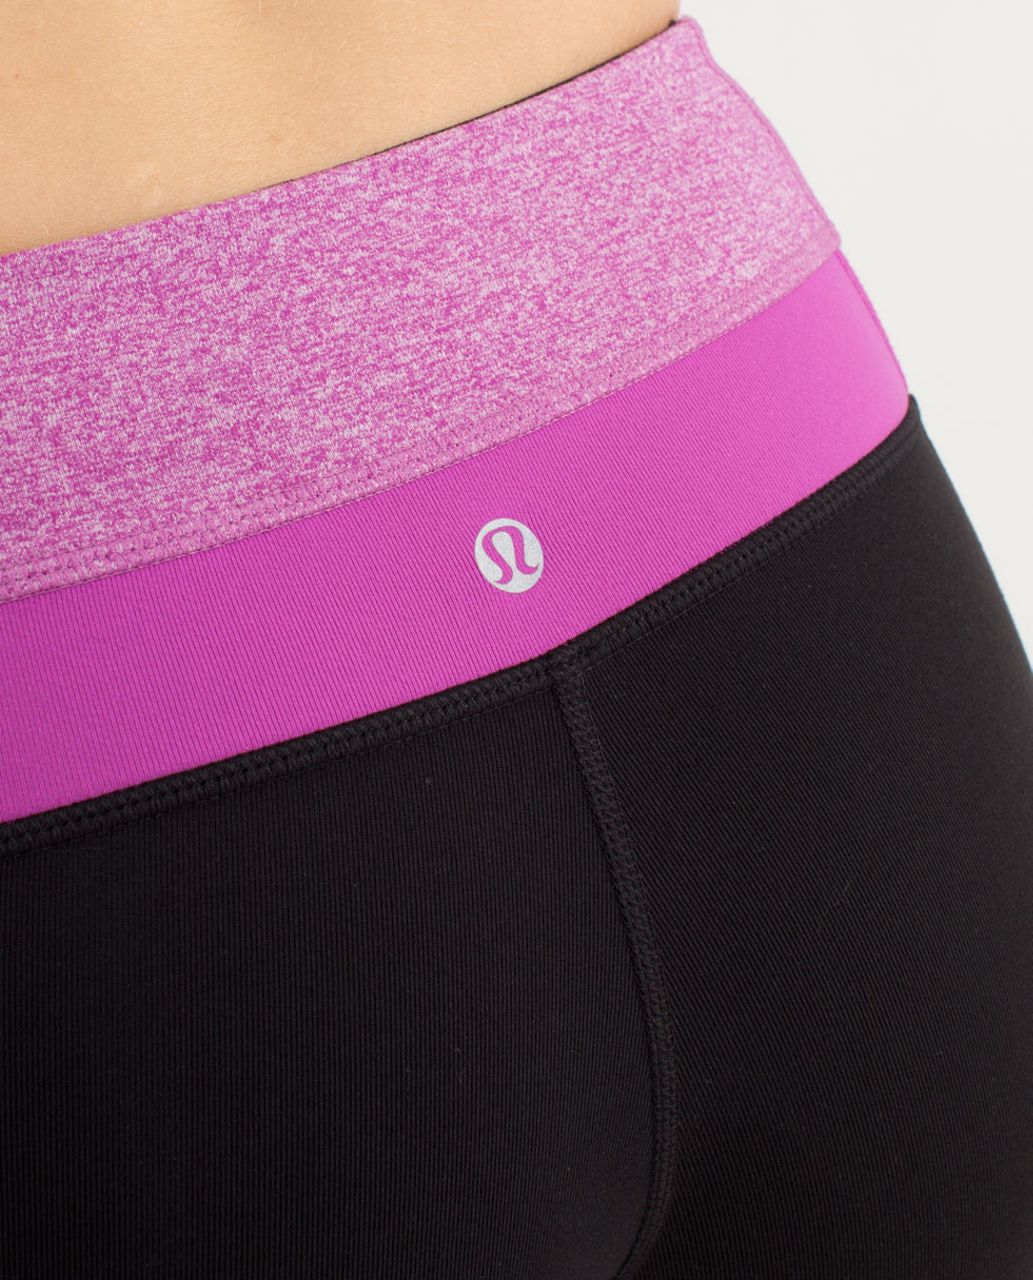 Lululemon Groove Pant (Regular) - Black /  Heathered Ultra Violet /  Ultra Violet